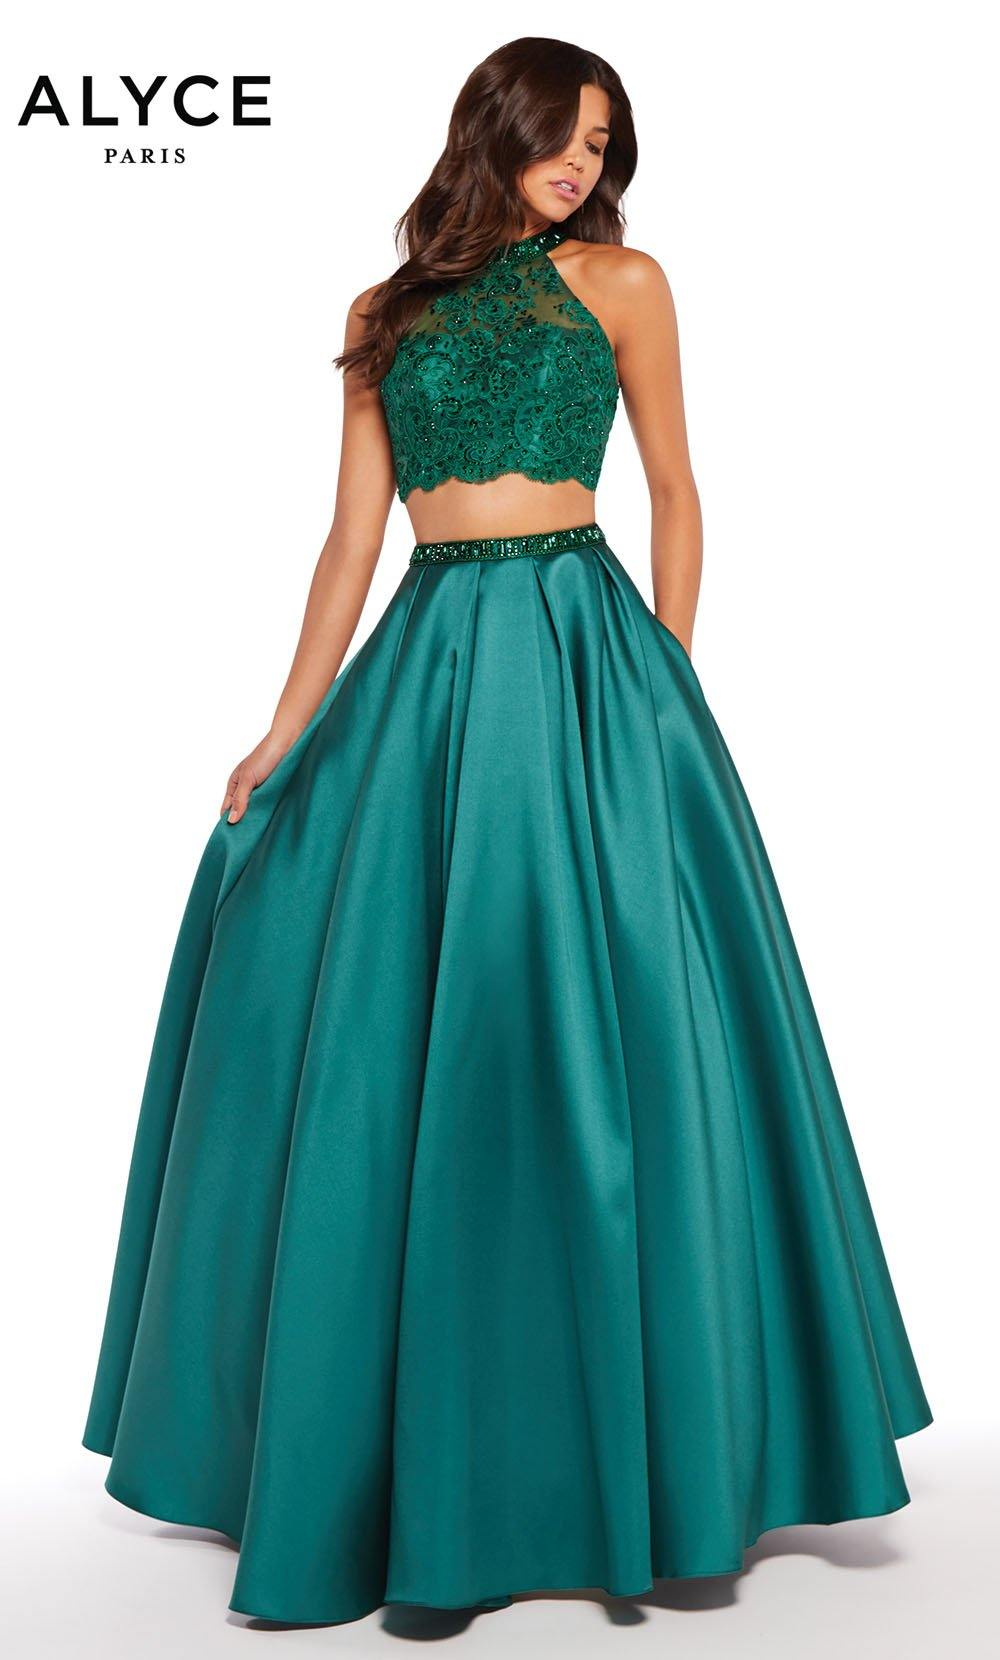 6 Tips For Successful Prom Dress Shopping - Alyce Paris